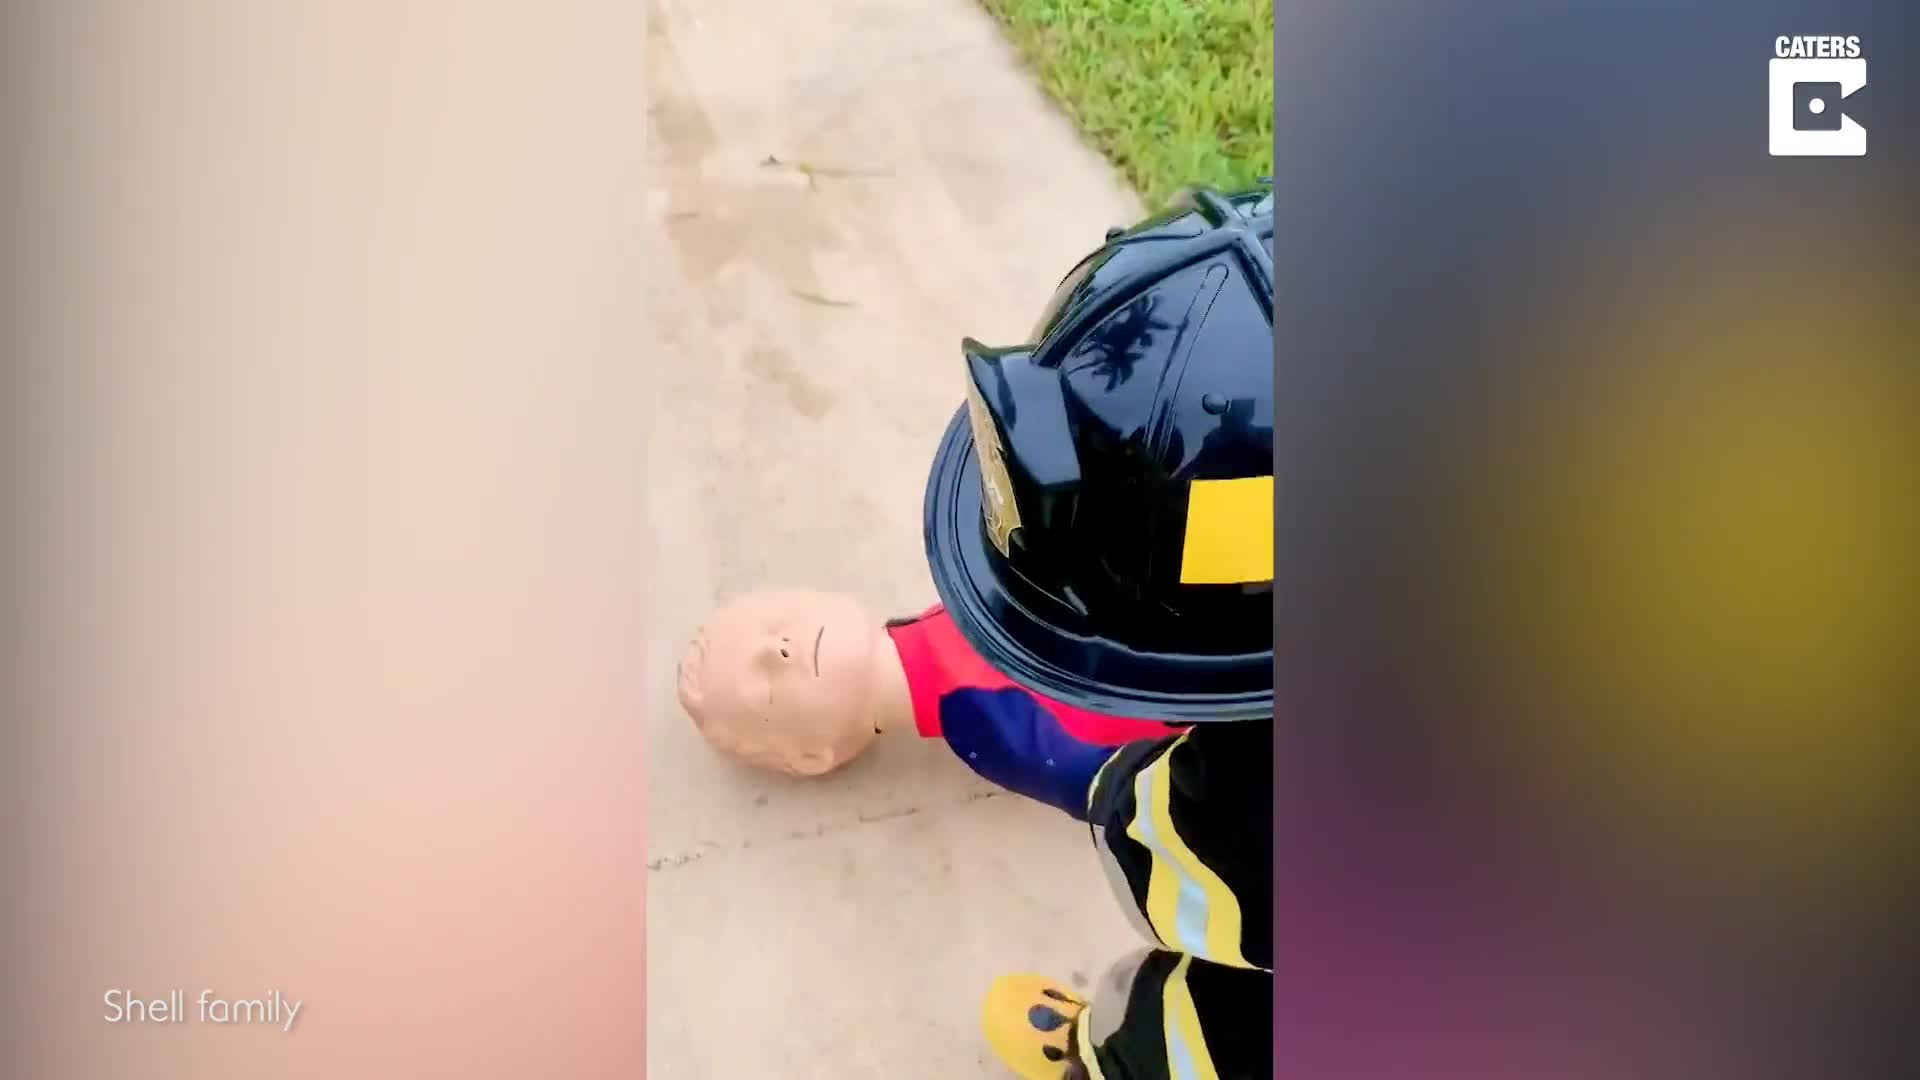 TODDLER PERFORMS MOCK FIREFIGHTER INTERVENTION AFTER BEING UPSET HE COULD NOT JOIN DAD ON A CALL